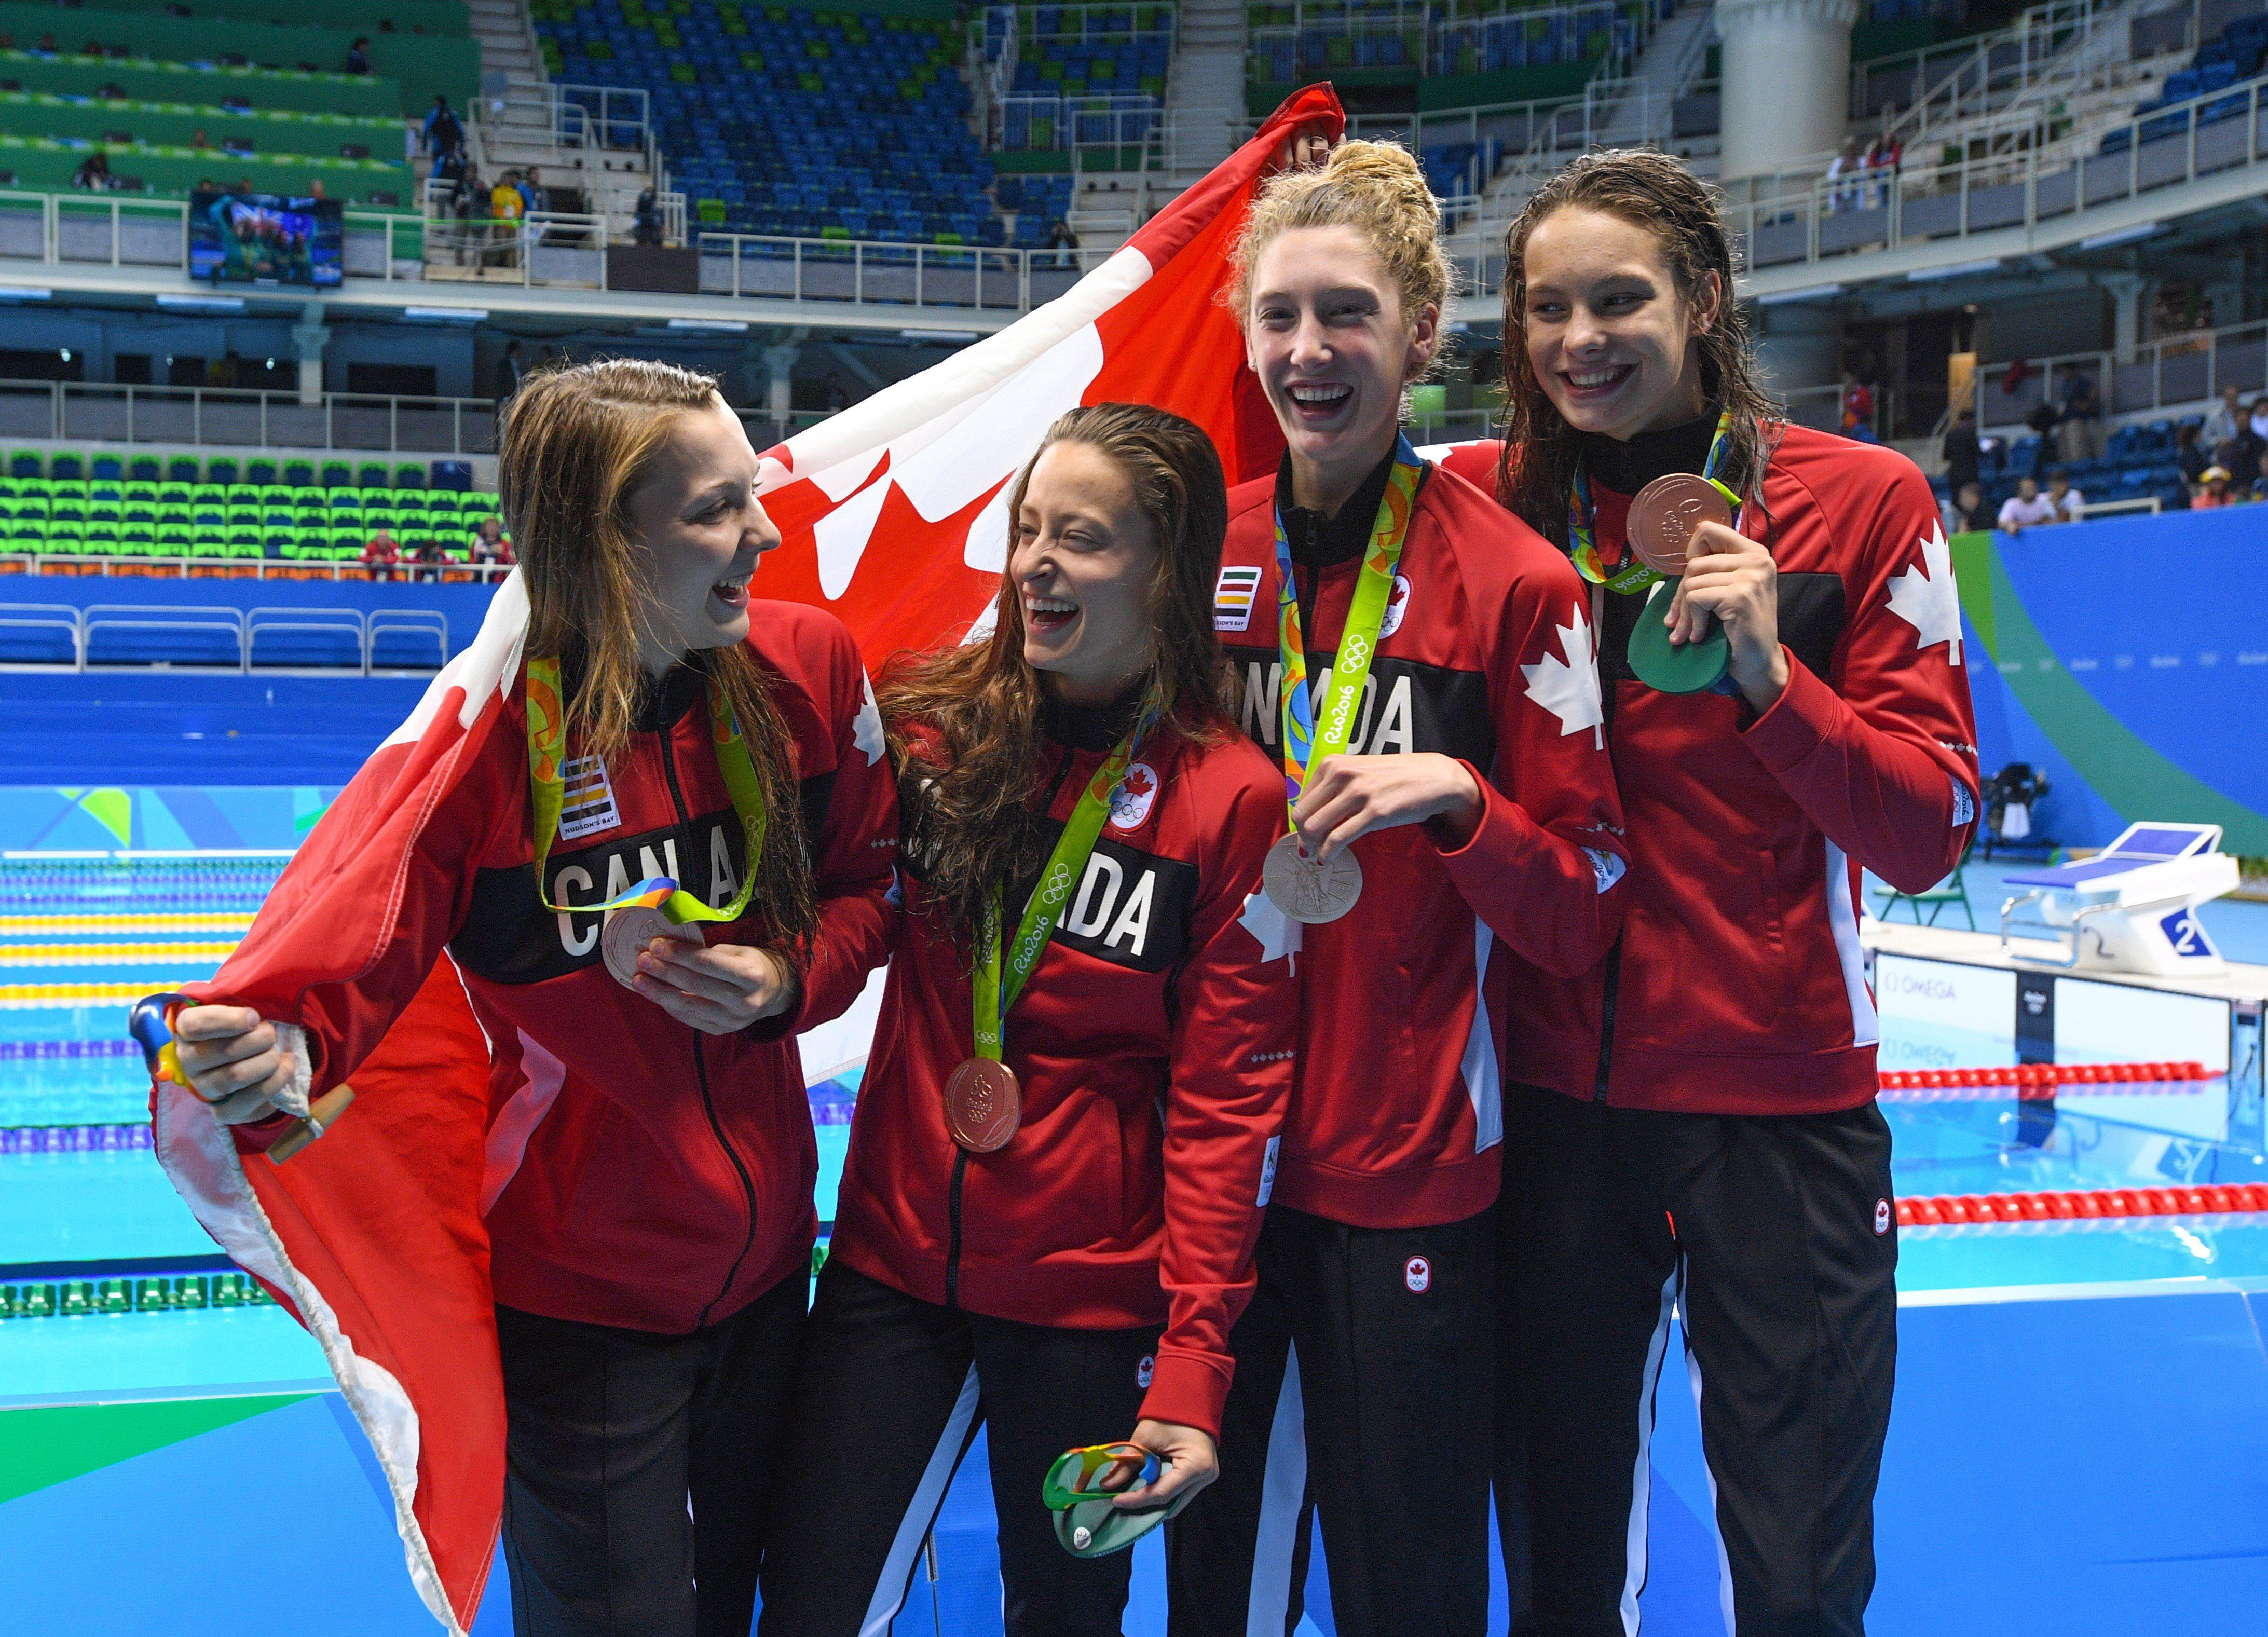 Canada's Brittany MacLean, Katerine Savard, Taylor Ruck, and Penny Oleksiak take bronze in the women's 4 x 200-metre freestyle relay during the 2016 Olympic Summer Games in Rio de Janeiro, Brazil in Wednesday, Aug. 10, 2016. THE CANADIAN PRESS/Sean Kilpatrick